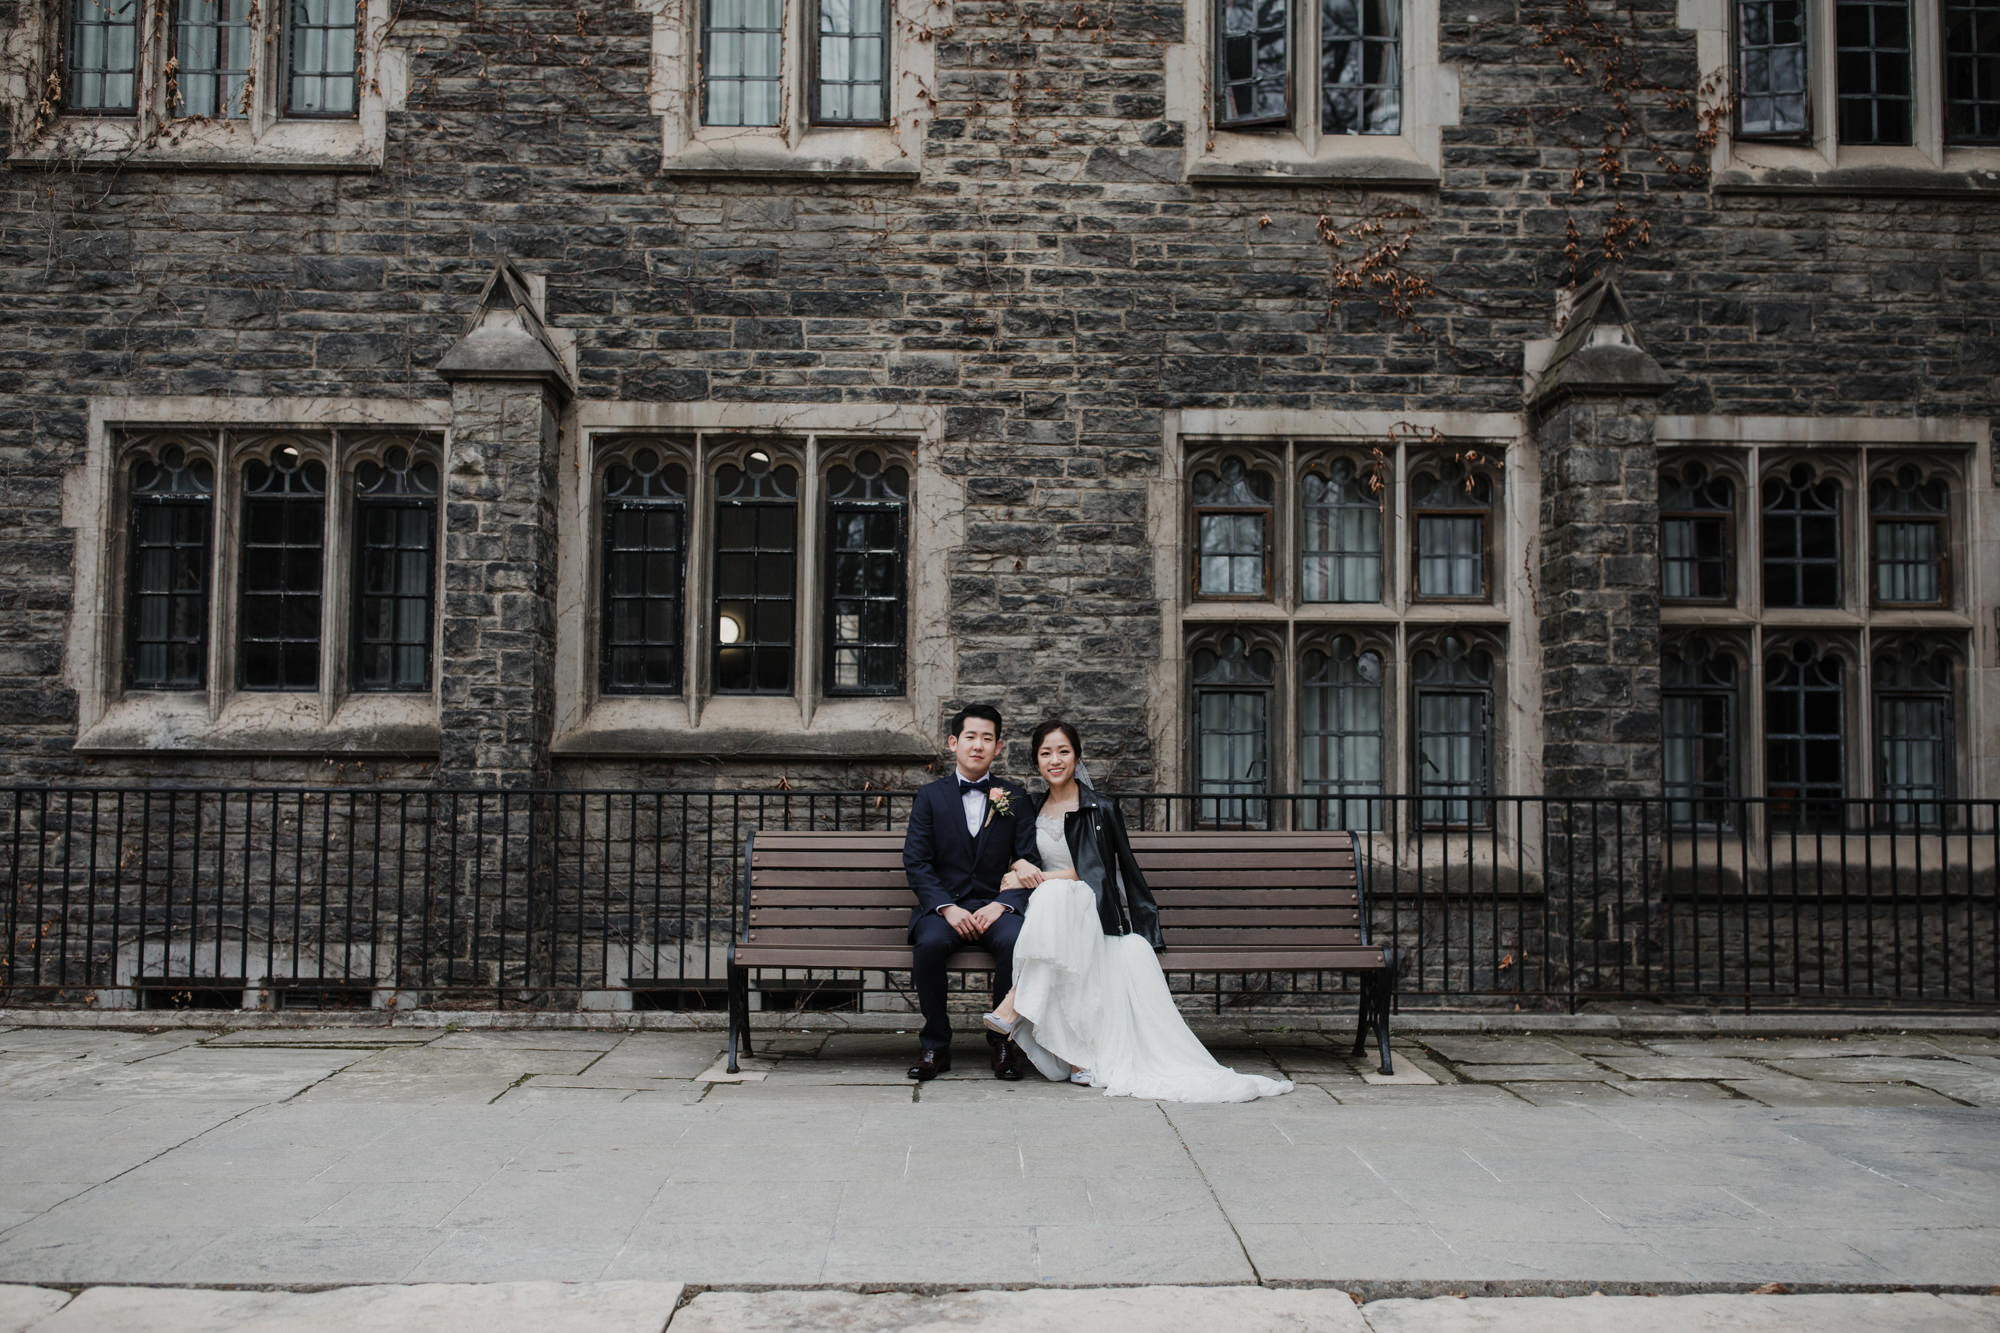 Toronto wedding photographer + Couple portrait